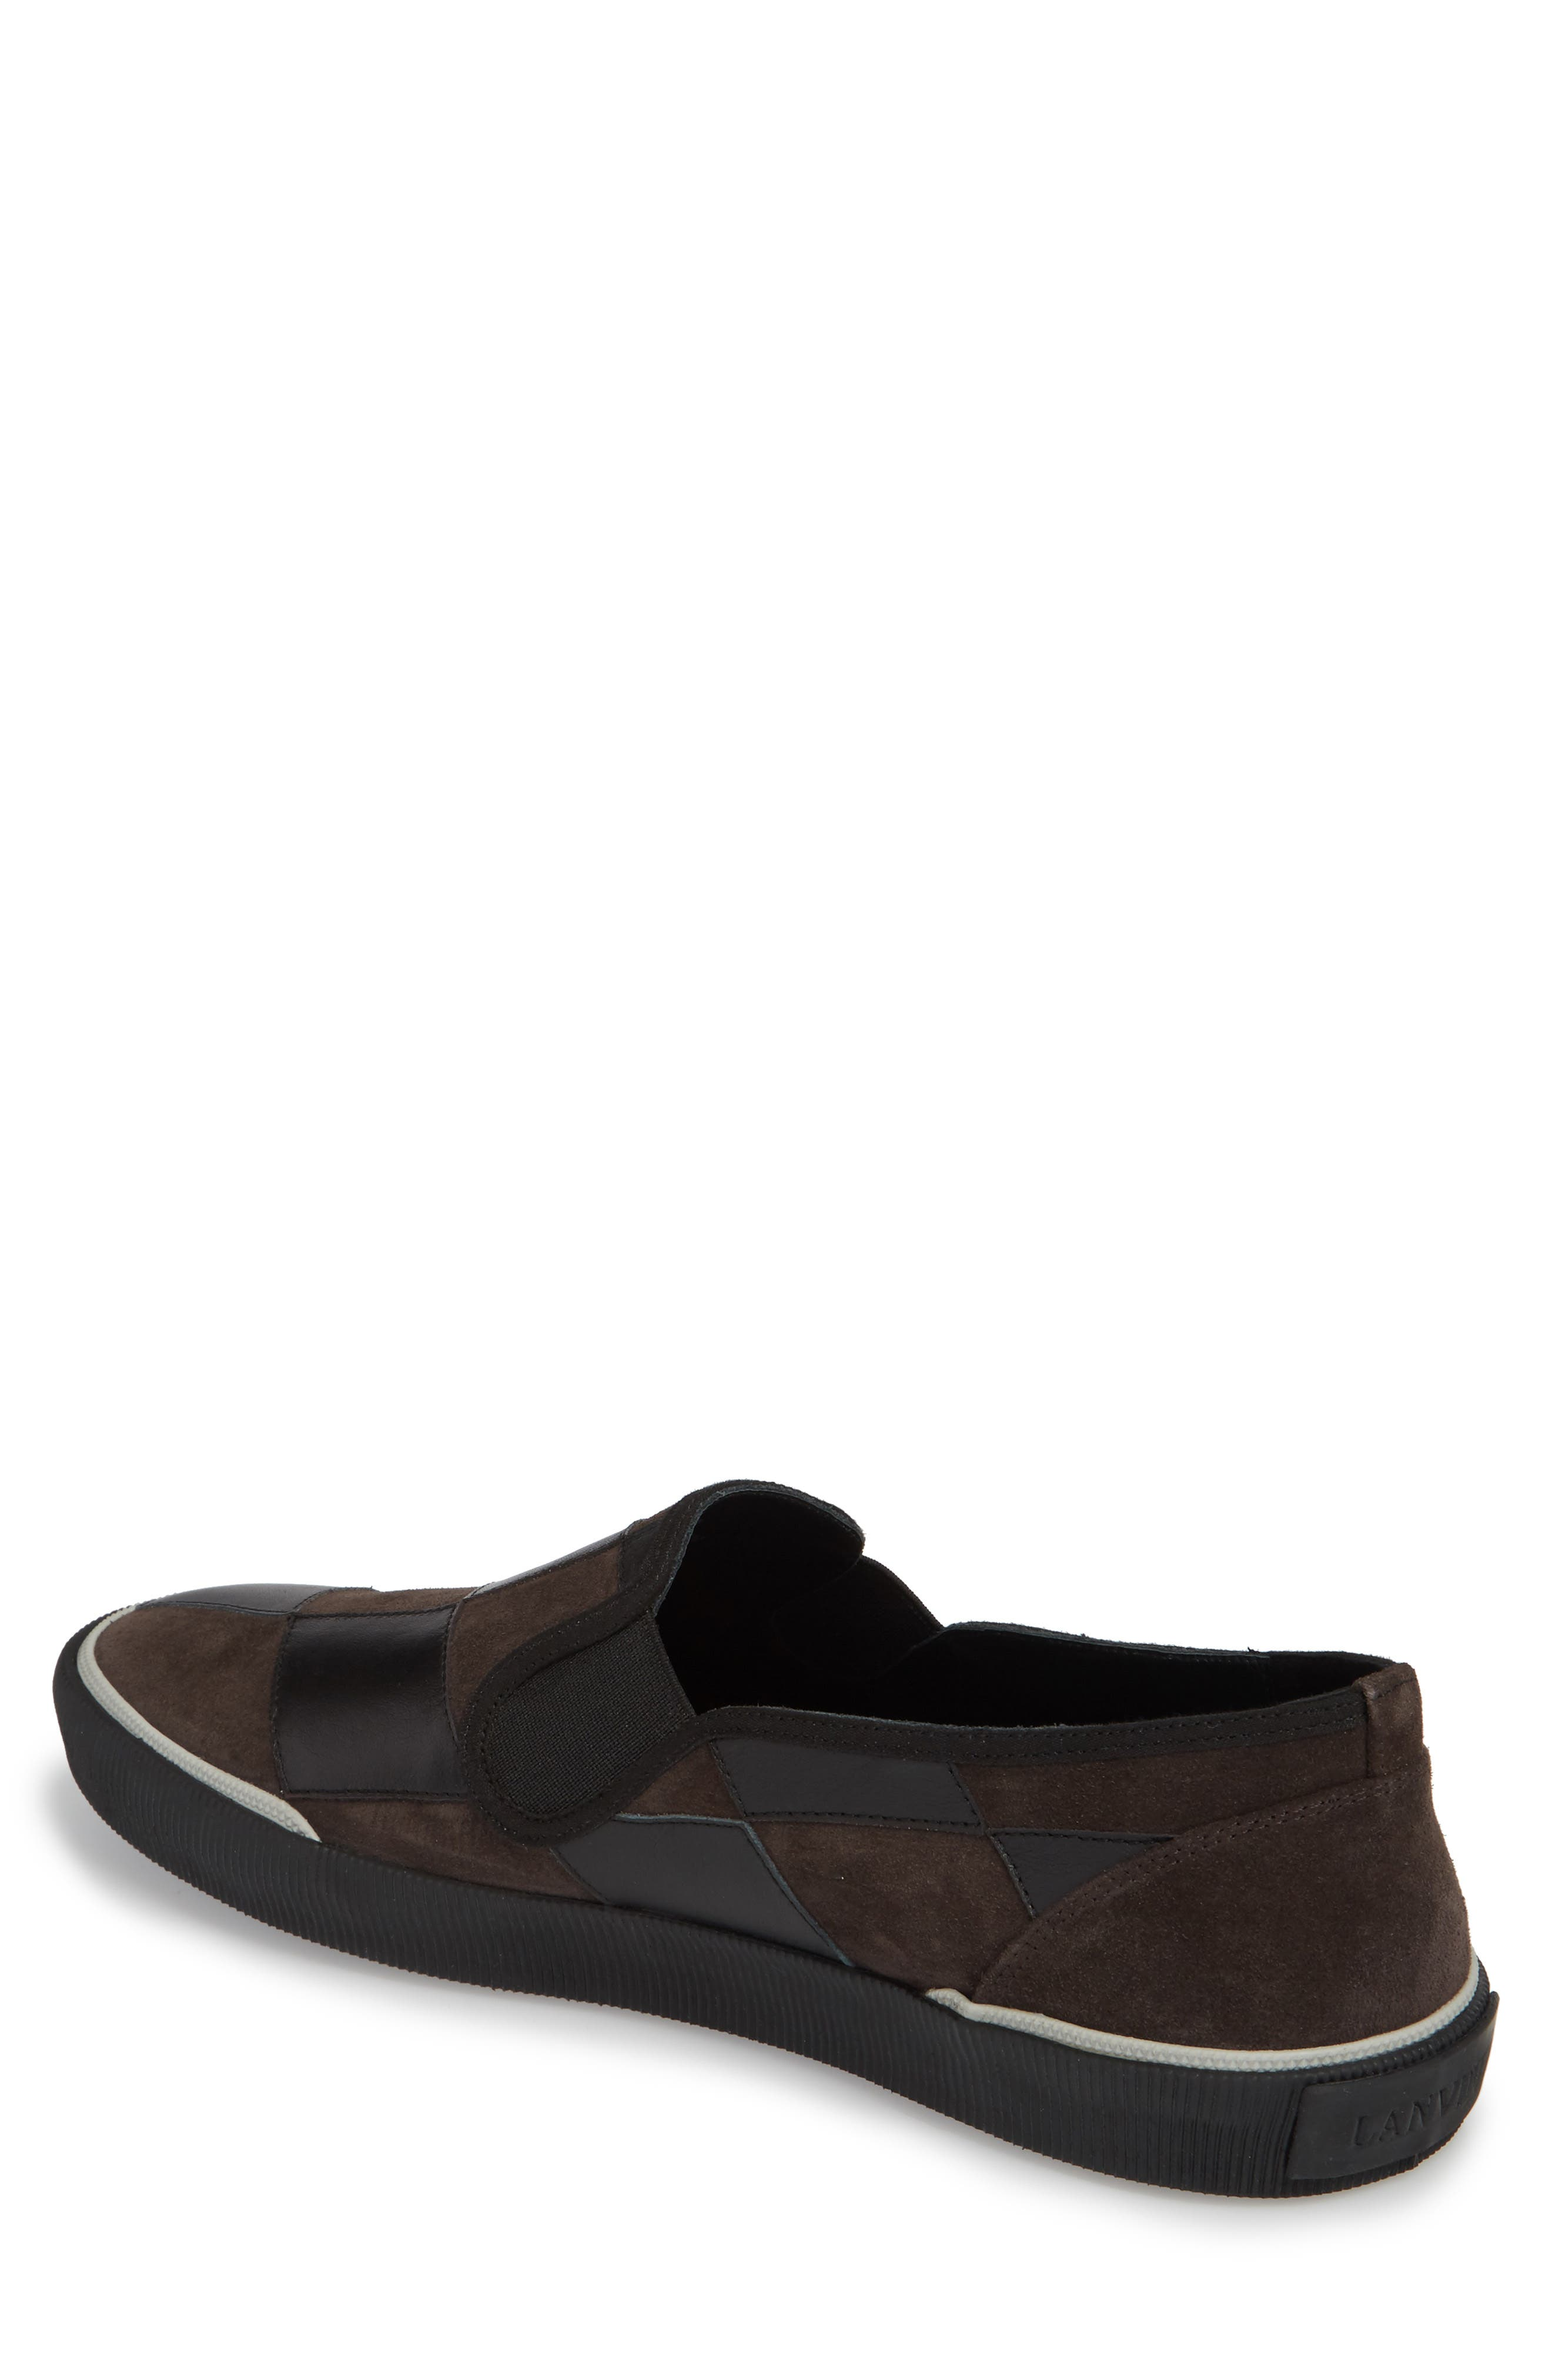 Diamond Patchwork Slip-On Sneaker,                             Alternate thumbnail 2, color,                             Taupe/ Black Leather/ Suede